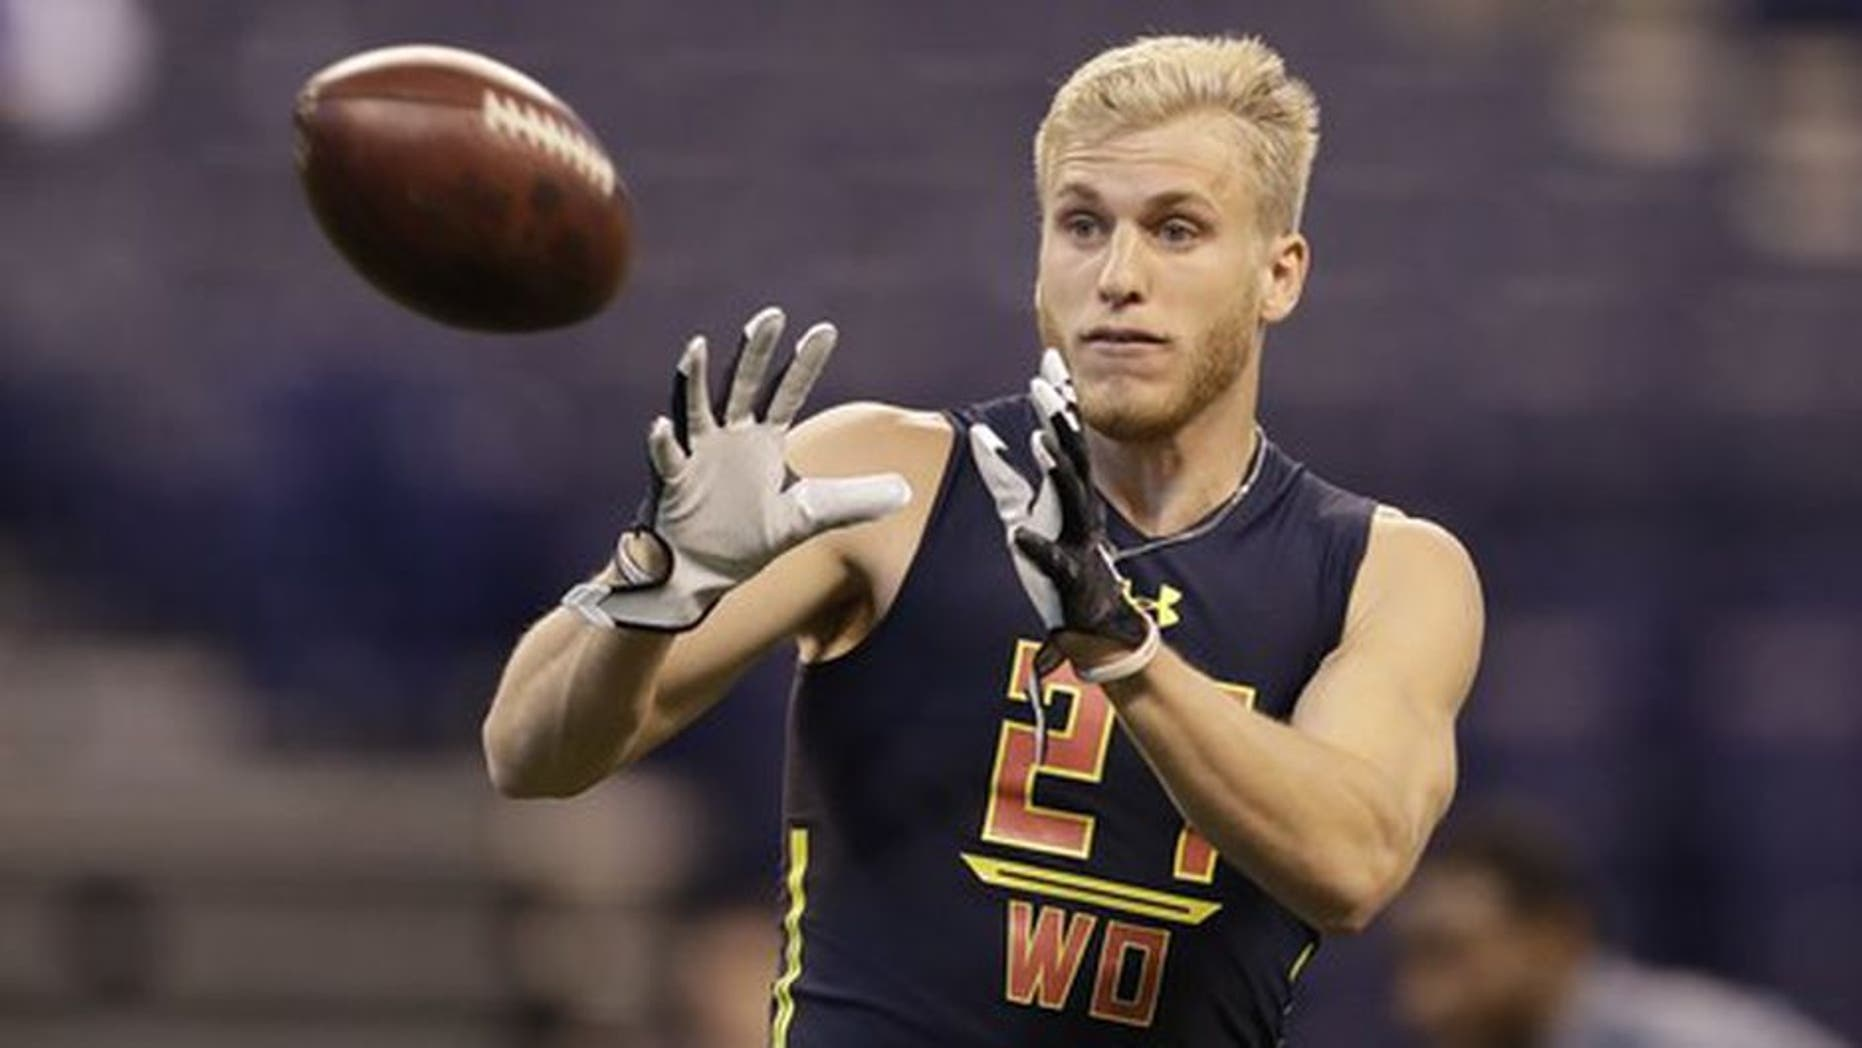 Eastern Washington wide receiver Cooper Kupp runs a drill at the NFL football scouting combine Saturday, March 4, 2017, in Indianapolis. (AP Photo/David J. Phillip)